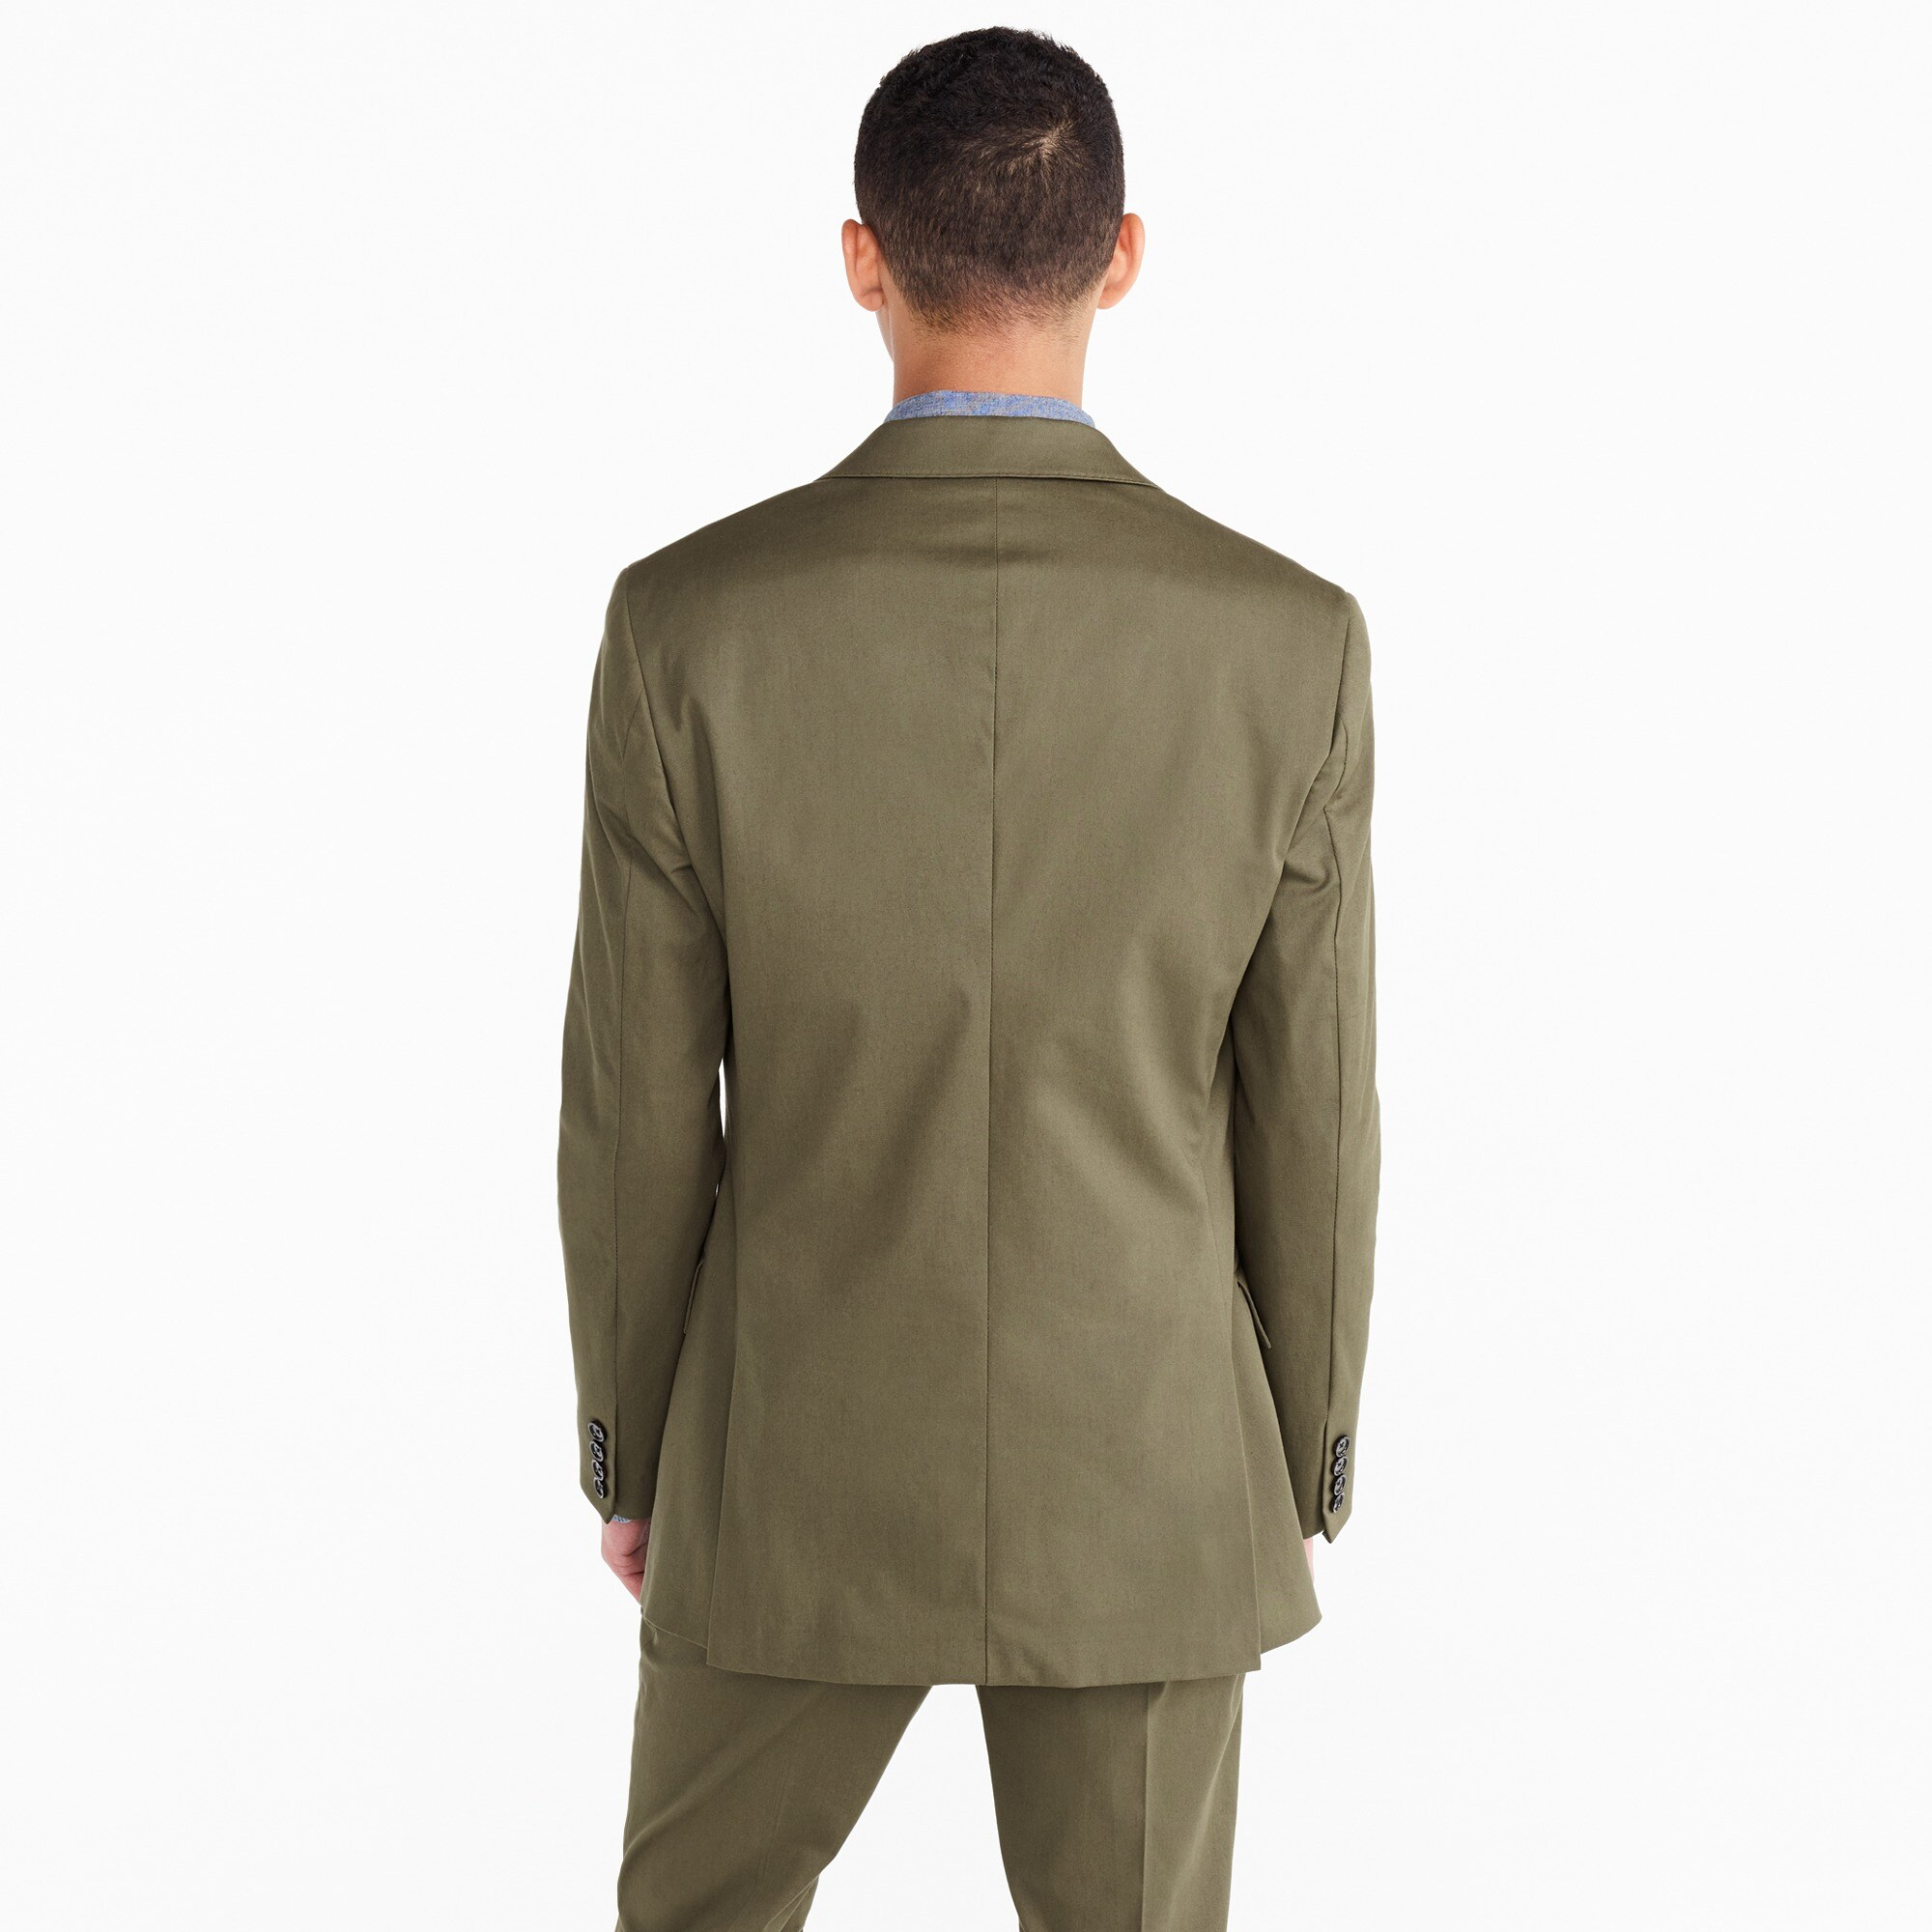 Image 2 for Ludlow Slim-fit suit jacket in Italian stretch chino